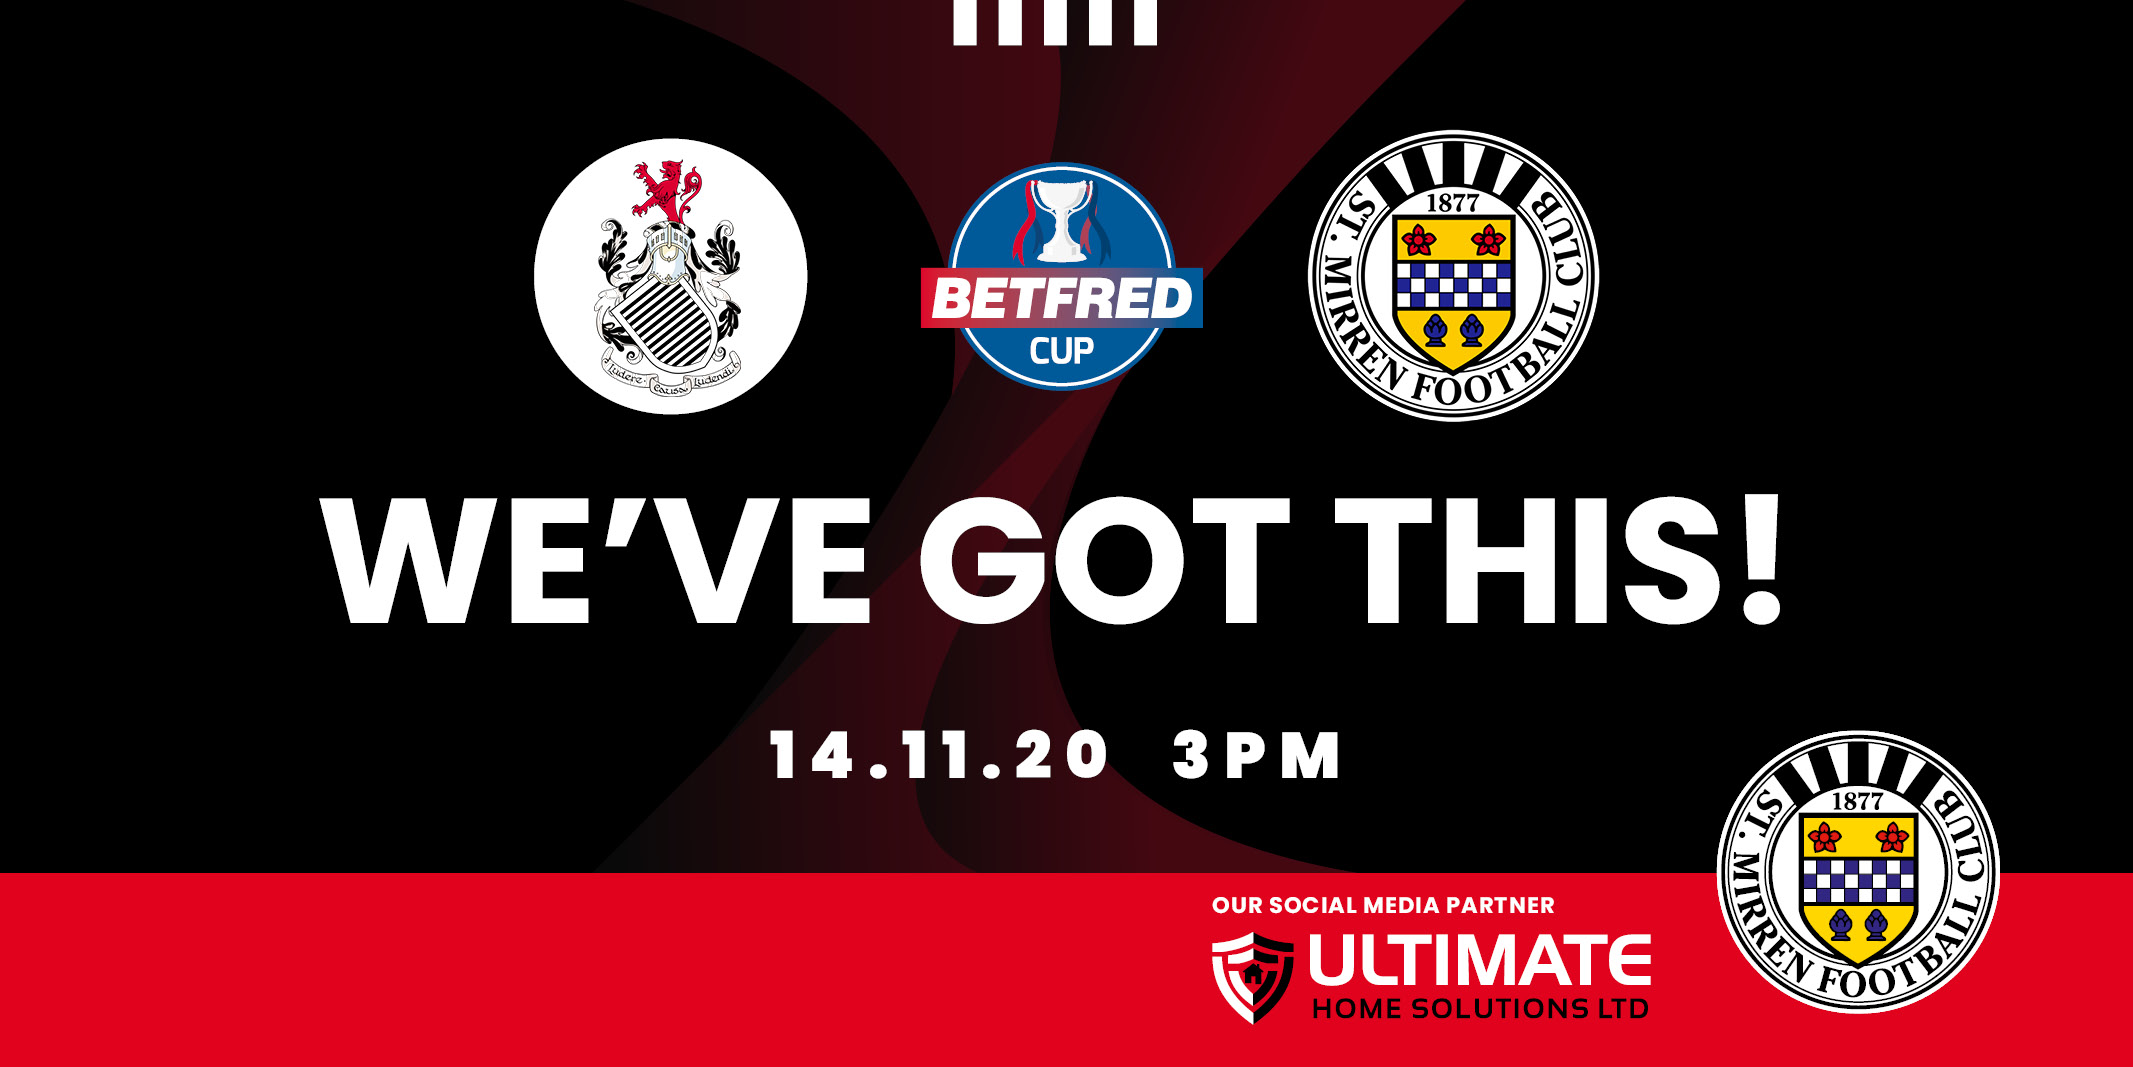 Up next: Queen's Park v St Mirren (14th Nov)